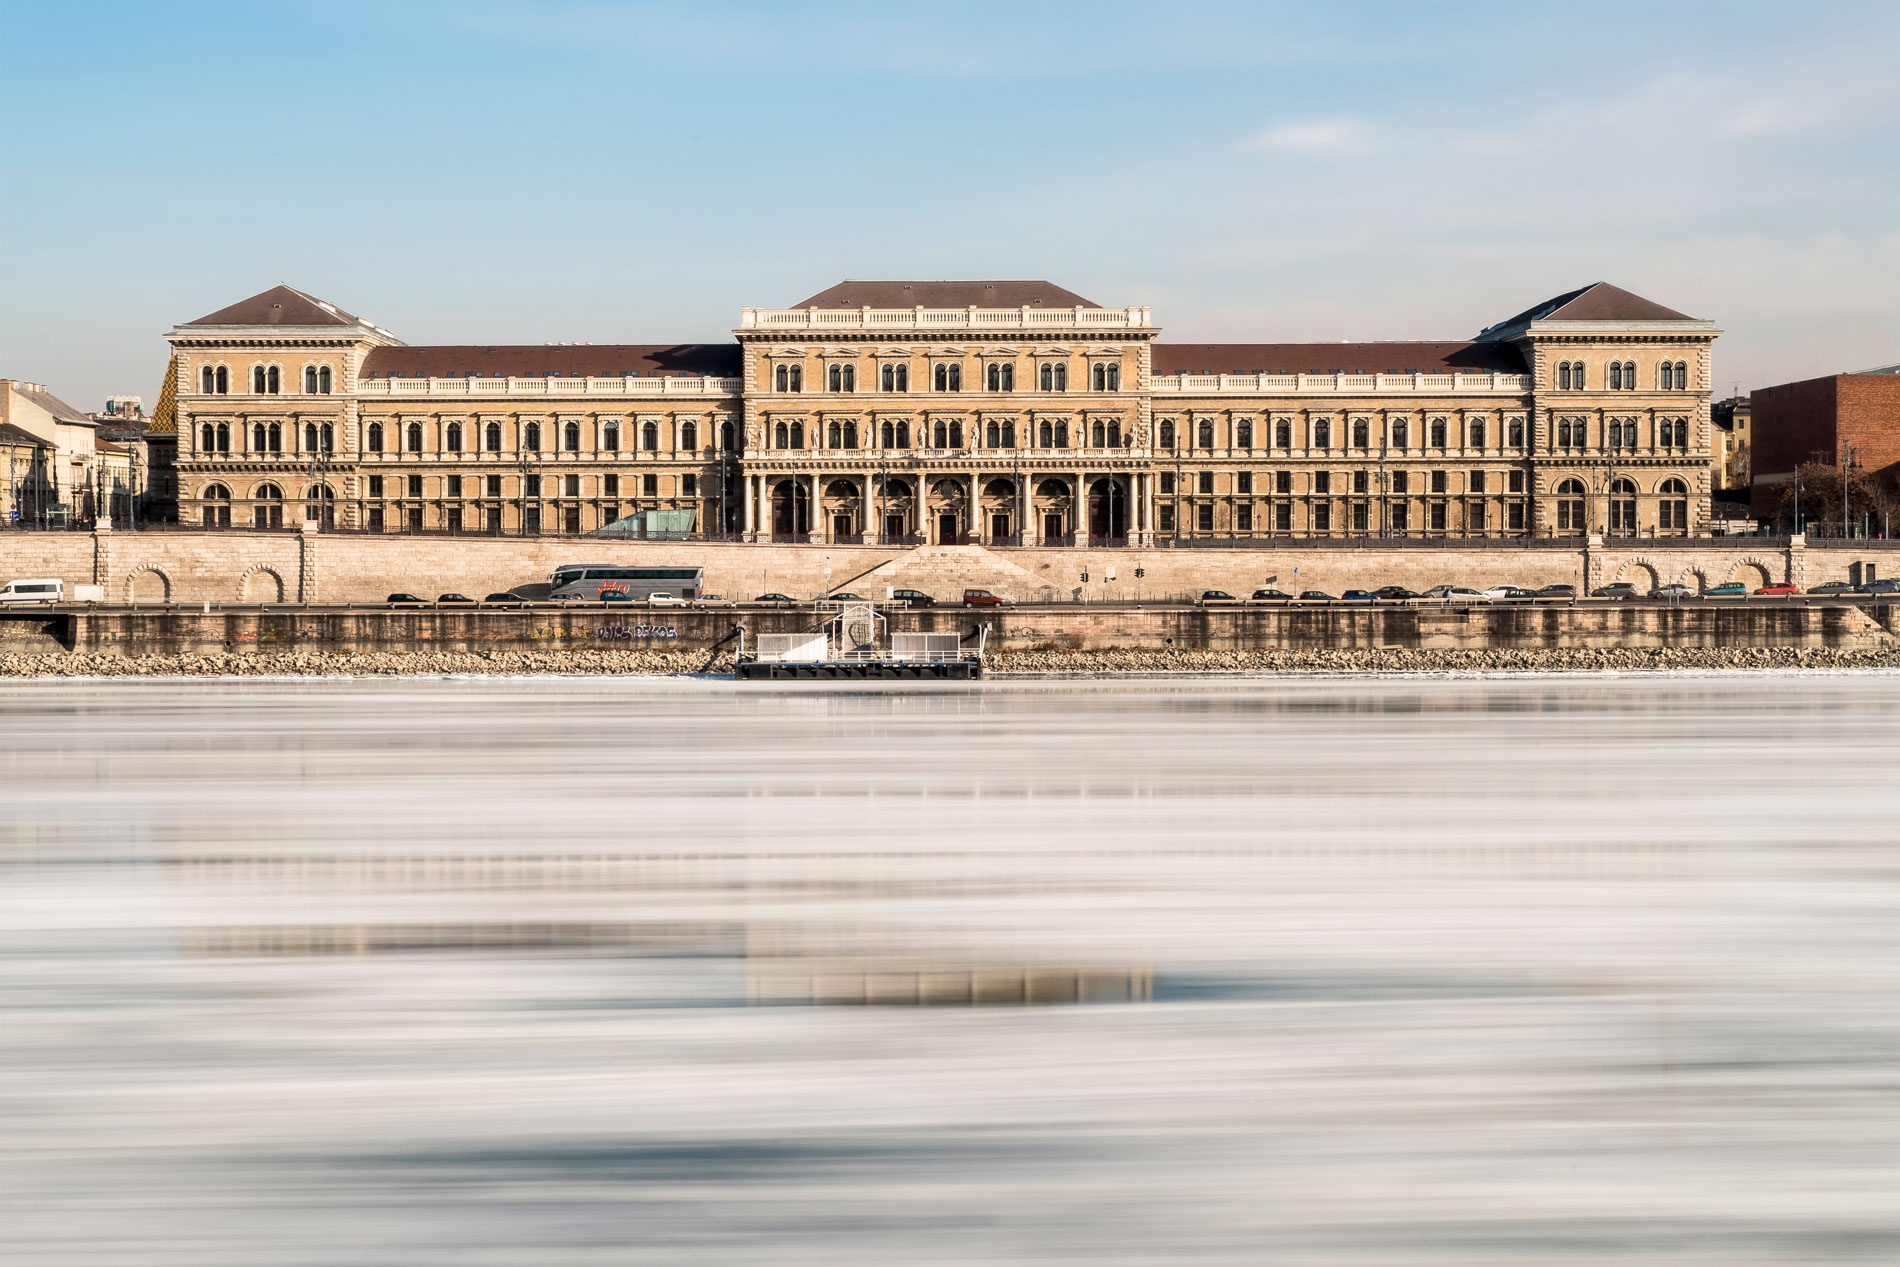 budapest_atthary_photography_danube_32